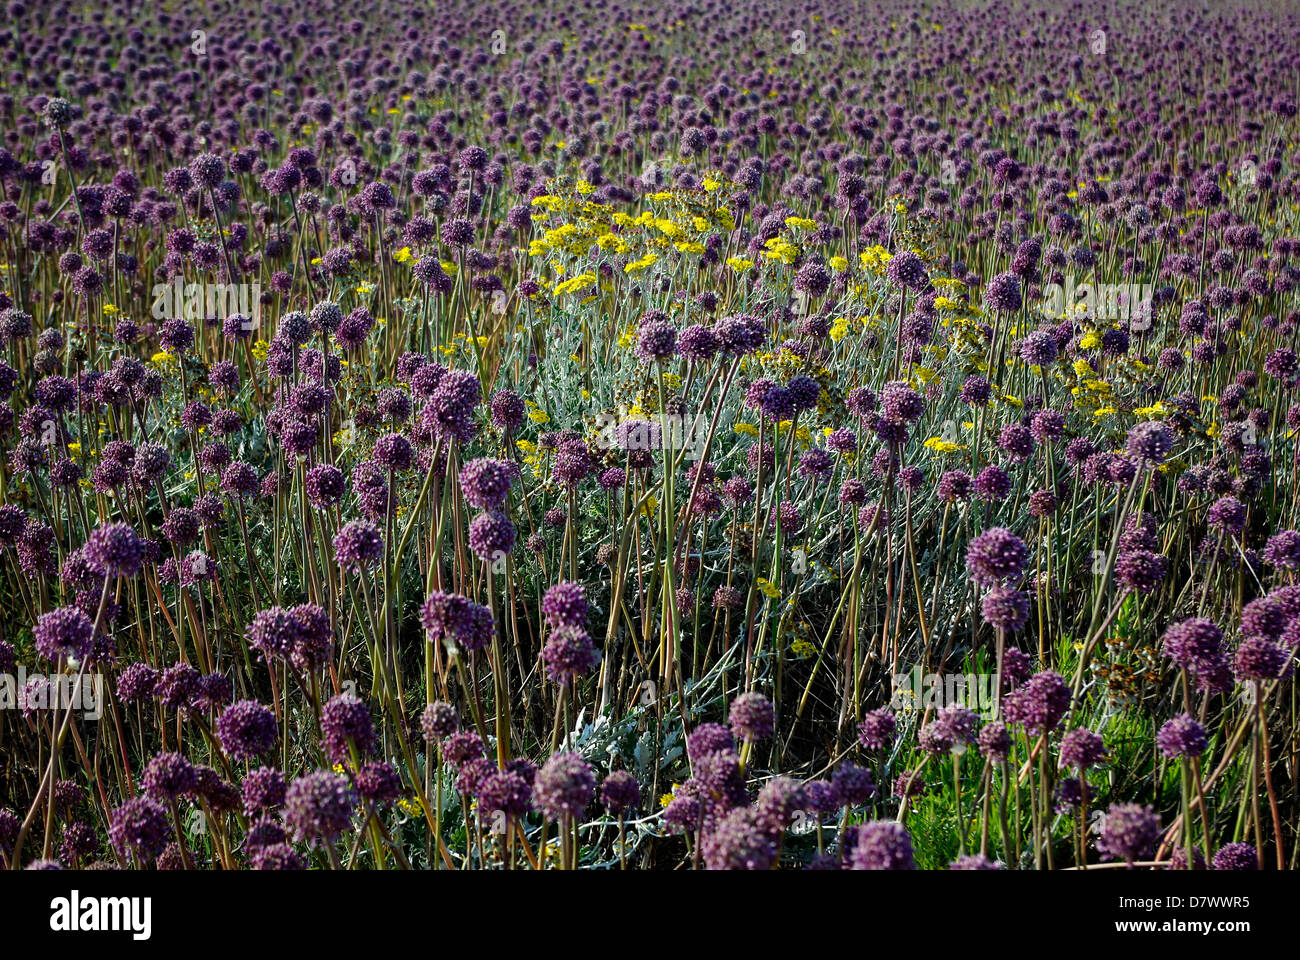 Purple Weed Field With Random Yellow Flowers At Sunny Summer Day